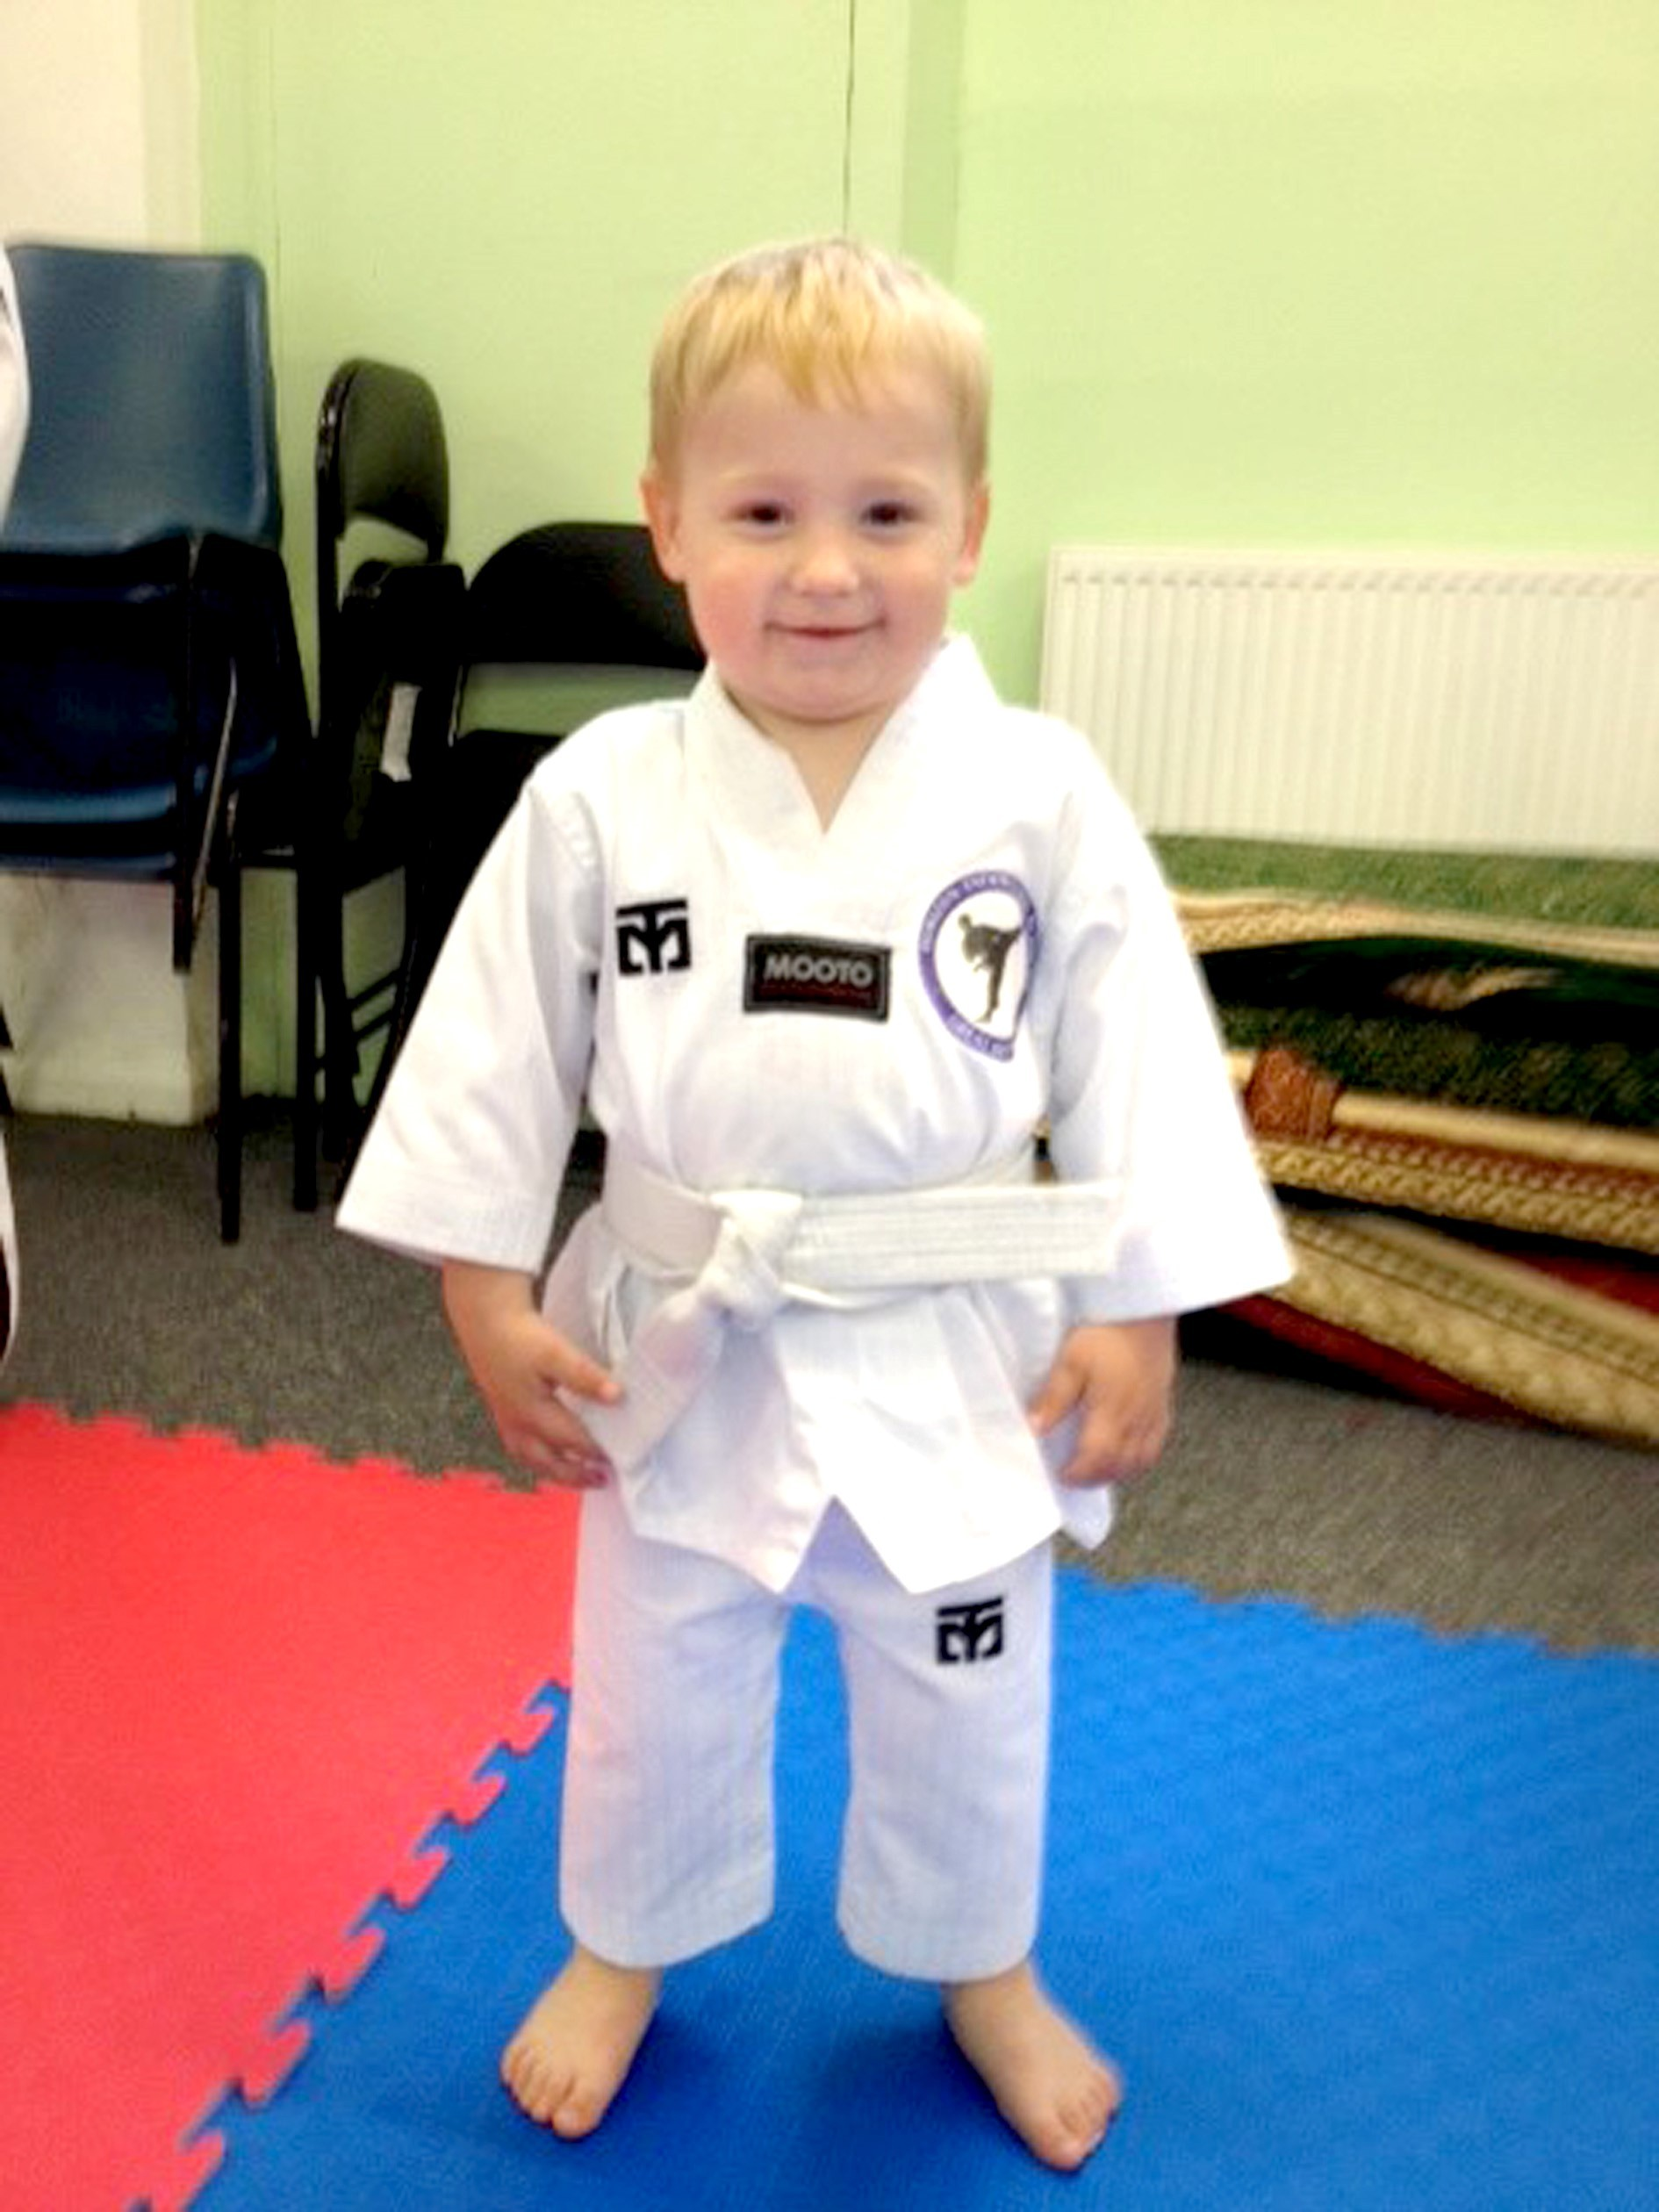 Taekwondo toddler Jayden, two, becomes country's youngest belt holder